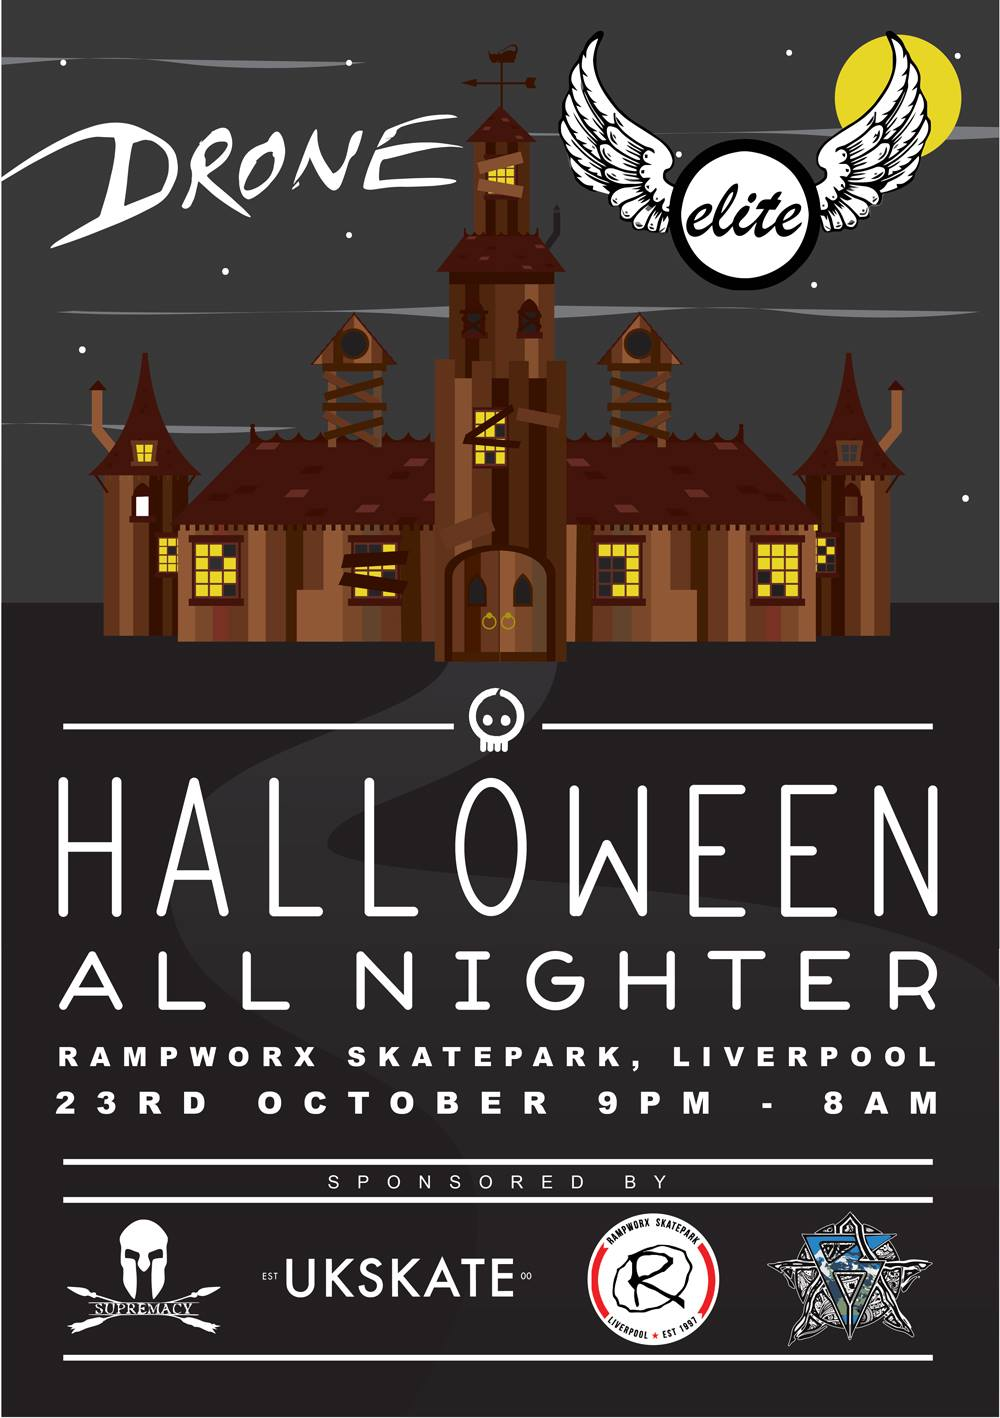 drone-scooters-elite-scooters-halloween-allnighter